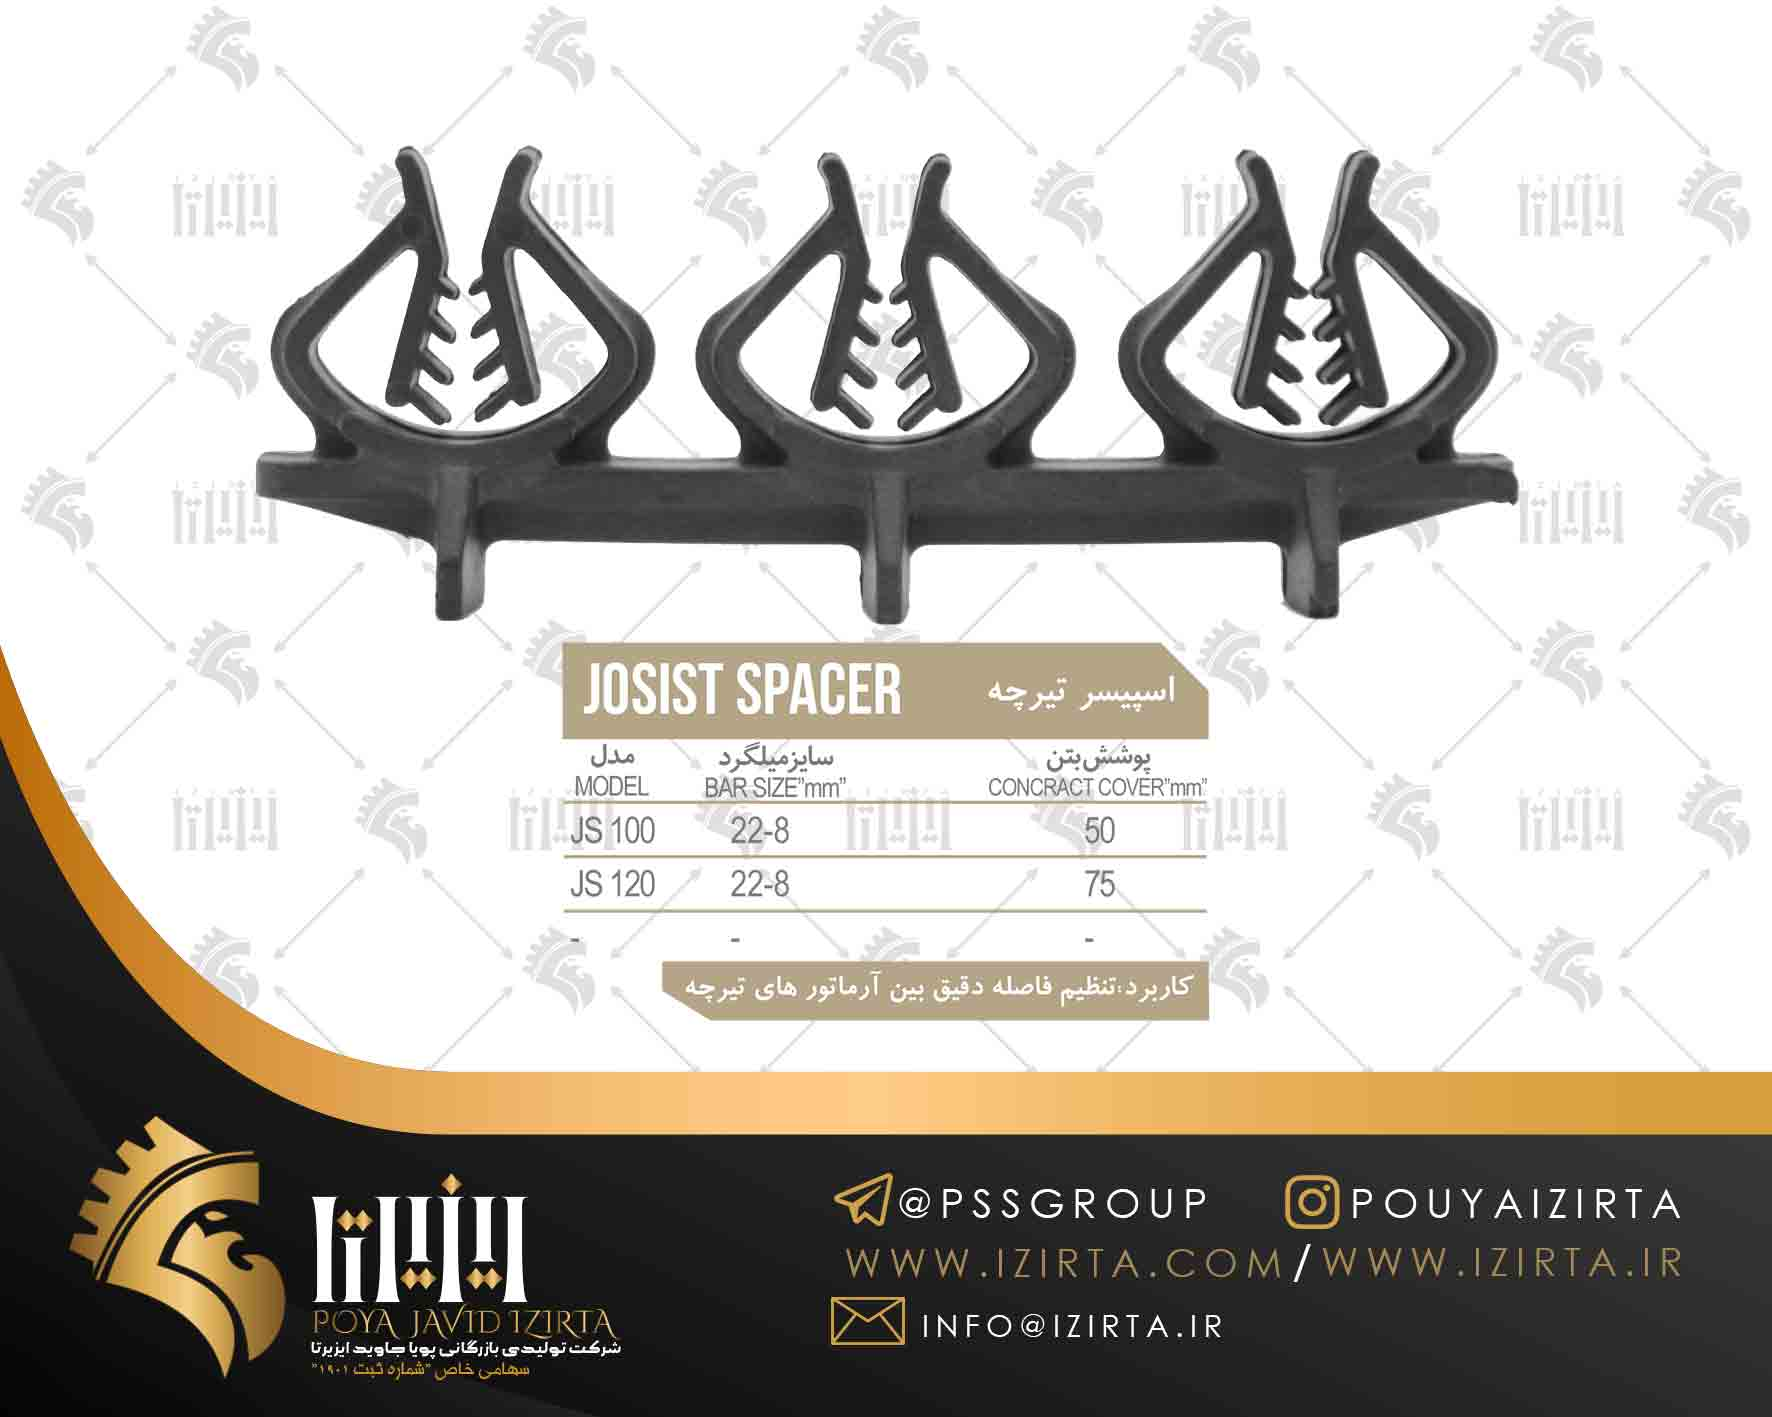 اسپيسر تيرچه  ( Josist Spacer )